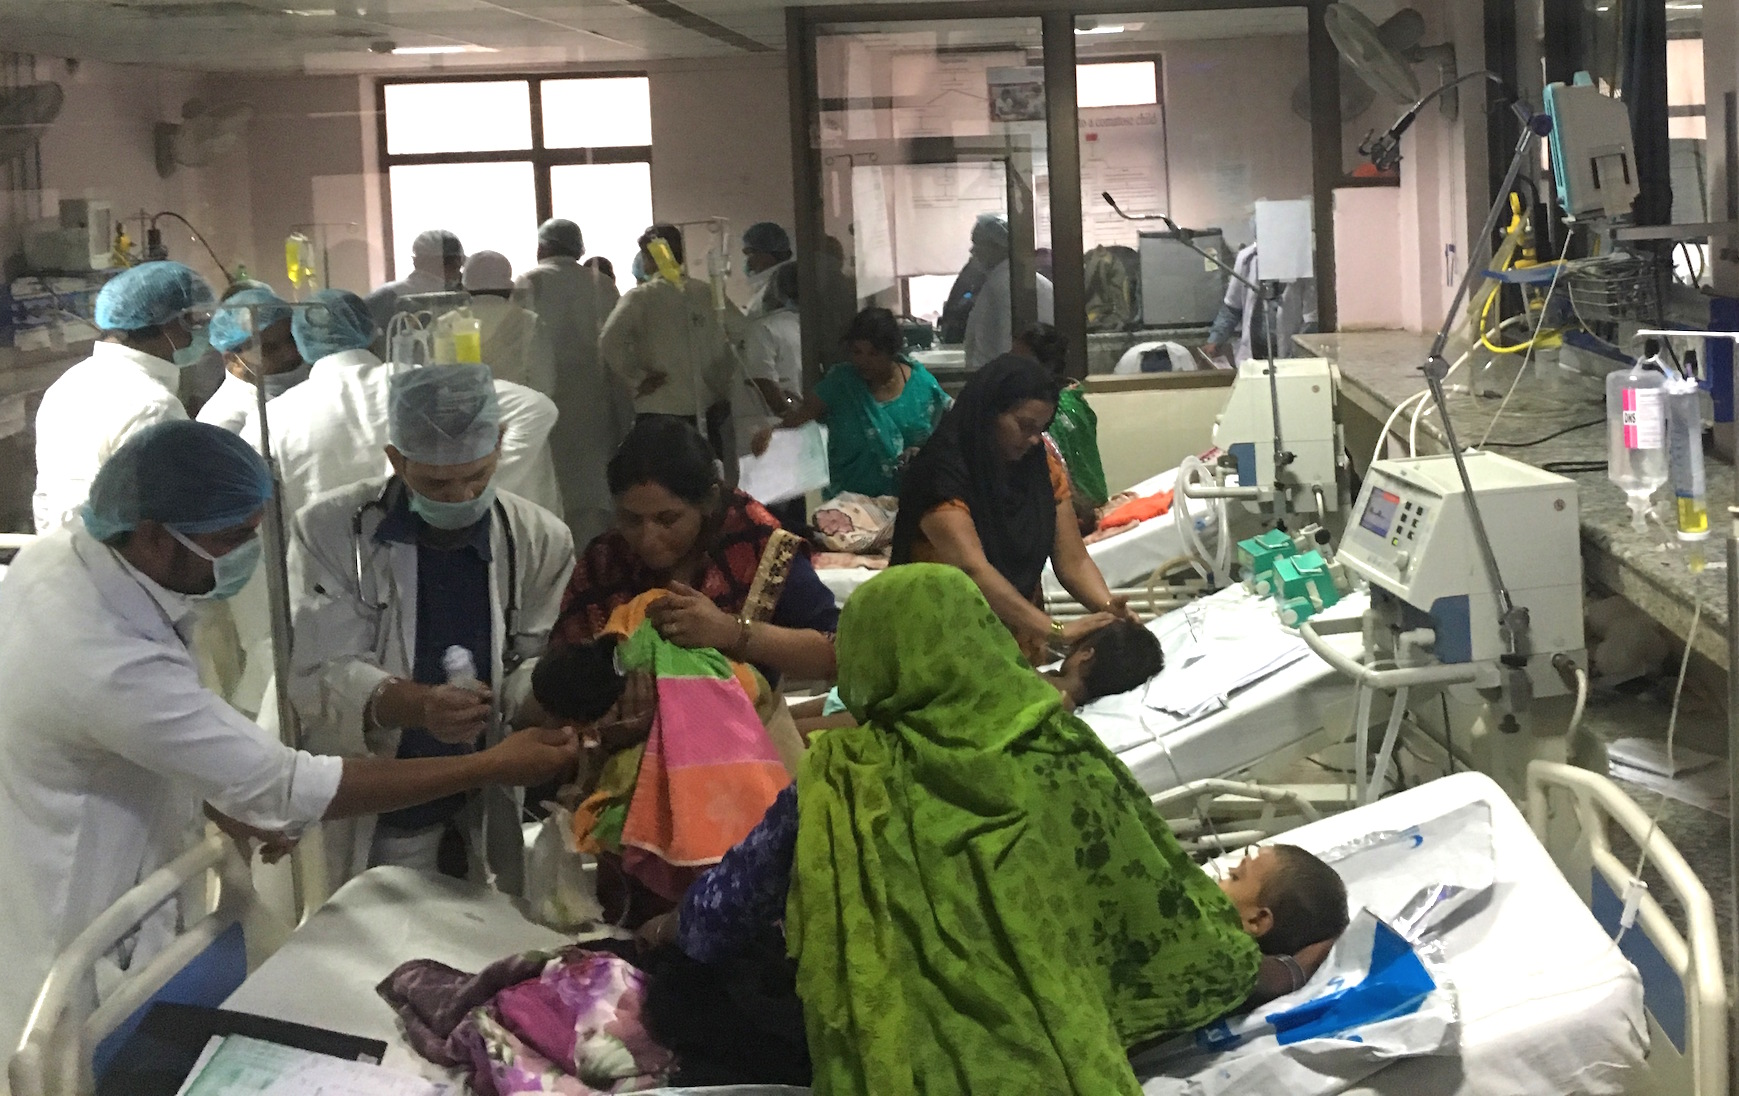 A view of the children's ward in the hospital. Photo credit: Menaka Rao